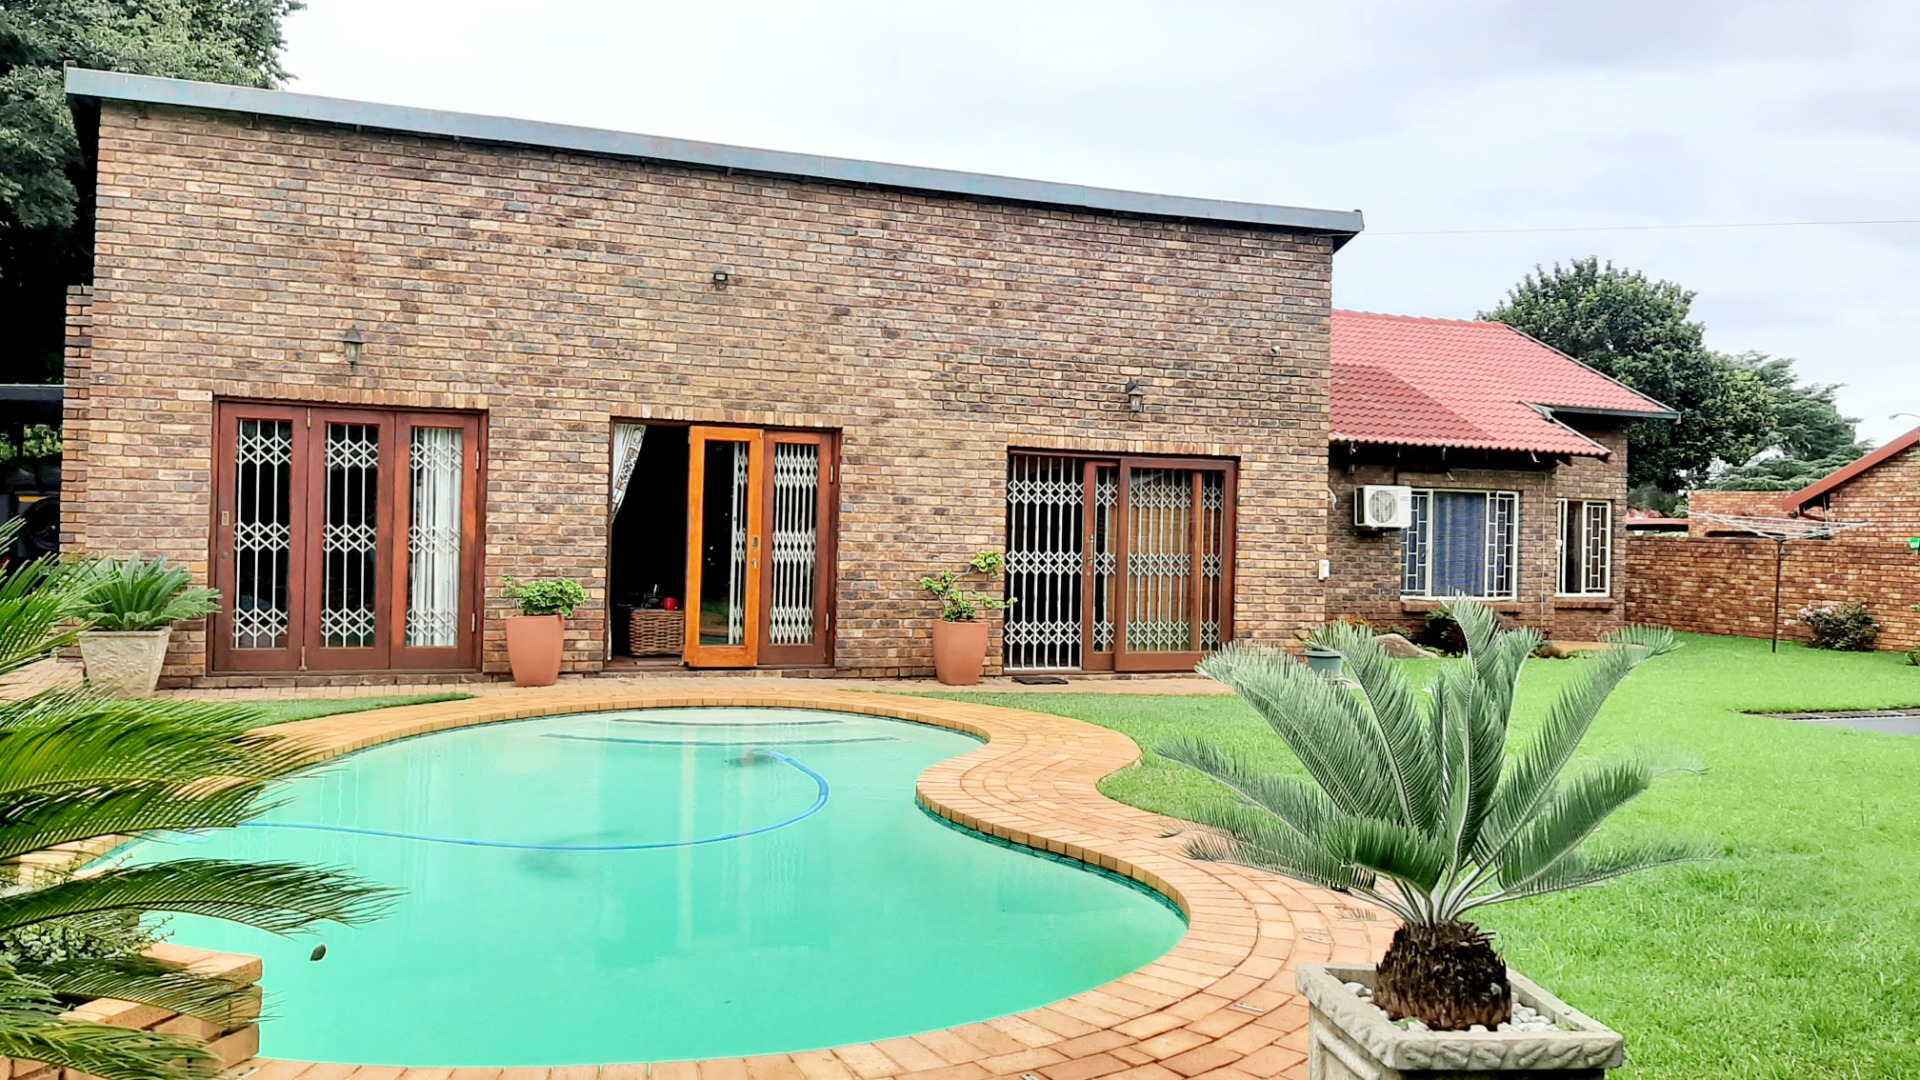 3 Bedroom House for Sale Rooihuiskraal North